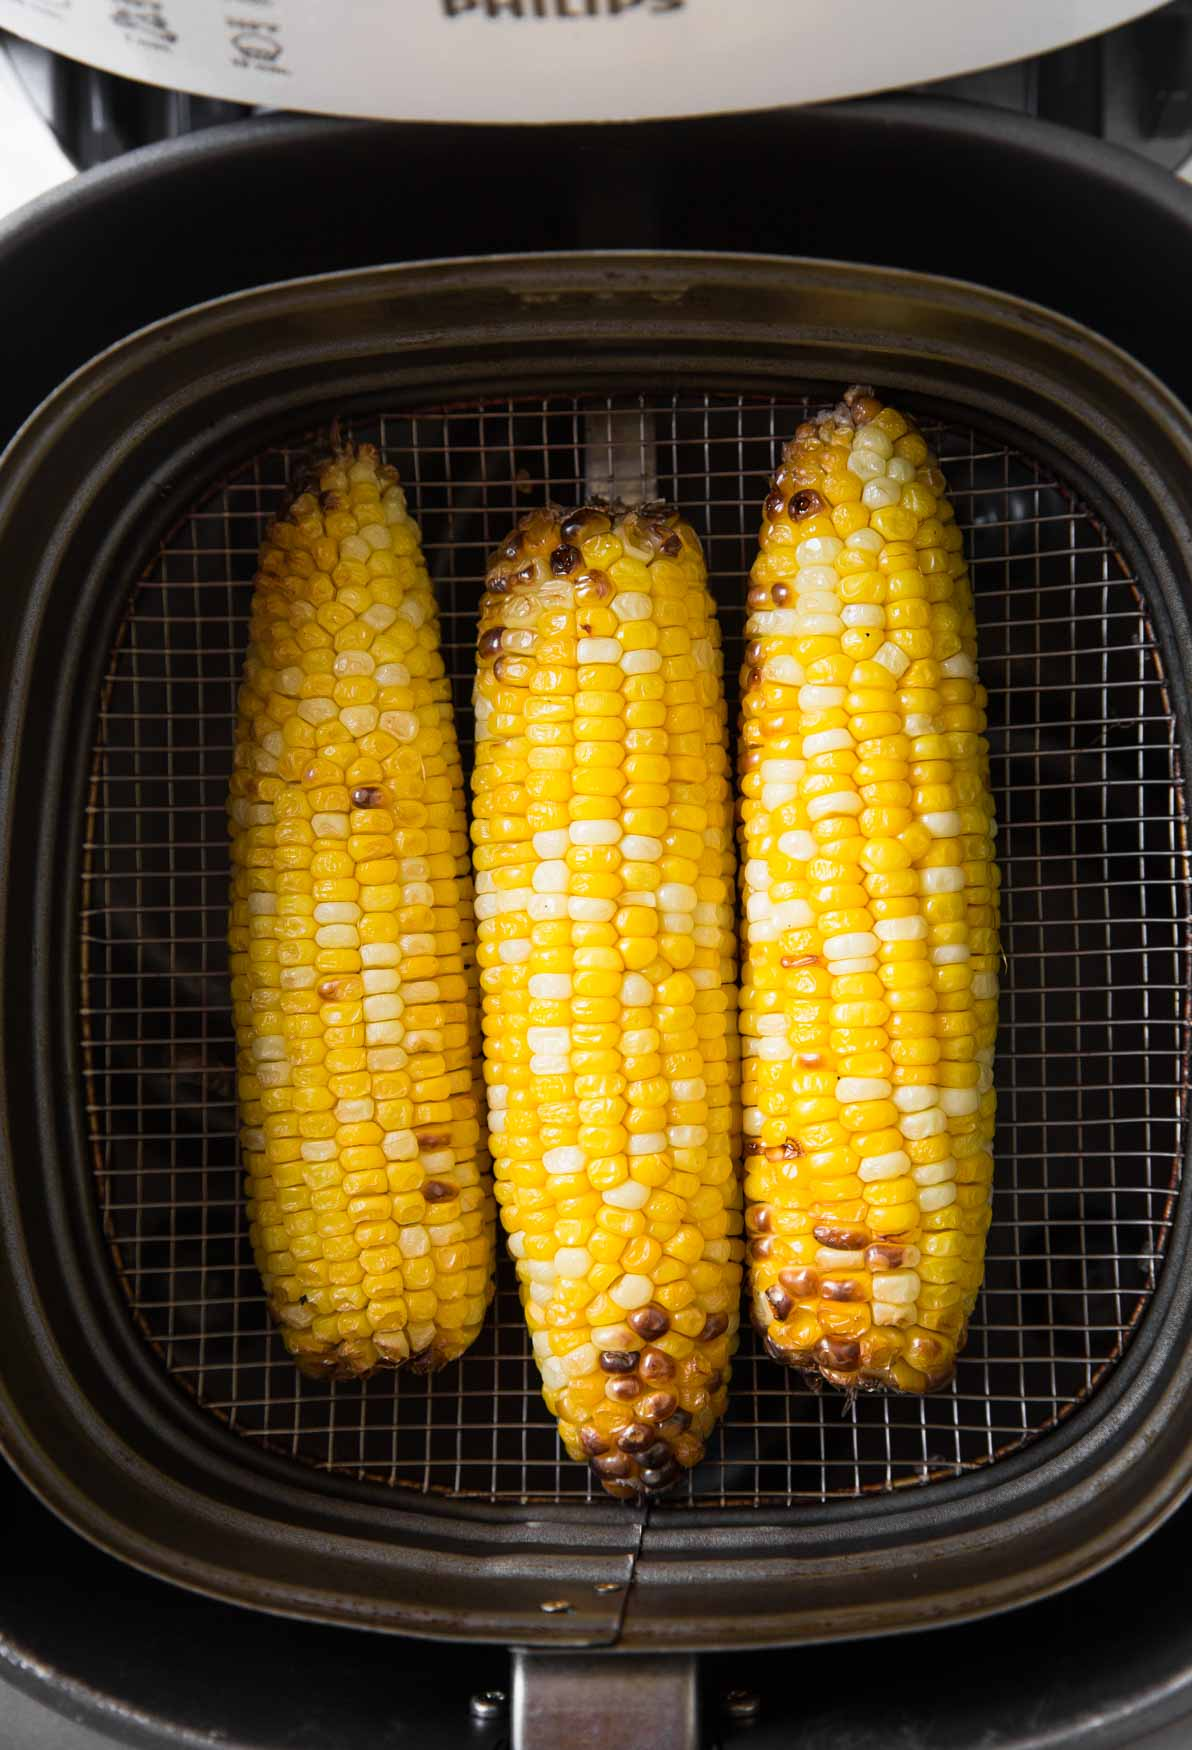 Roasted corn on the cob in Air Fryer Basket